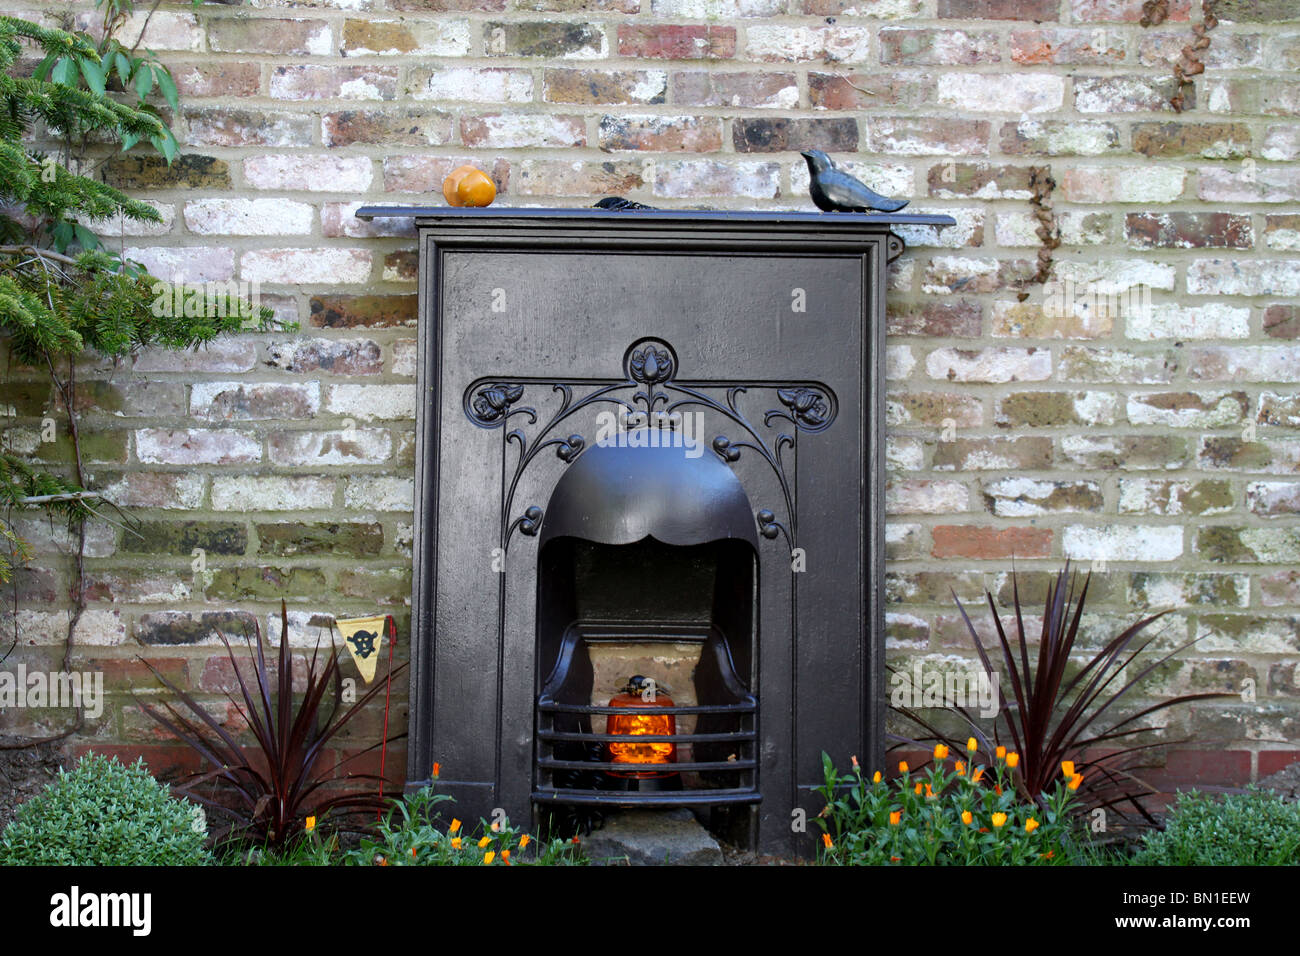 Garden Fireplace   Stock Image